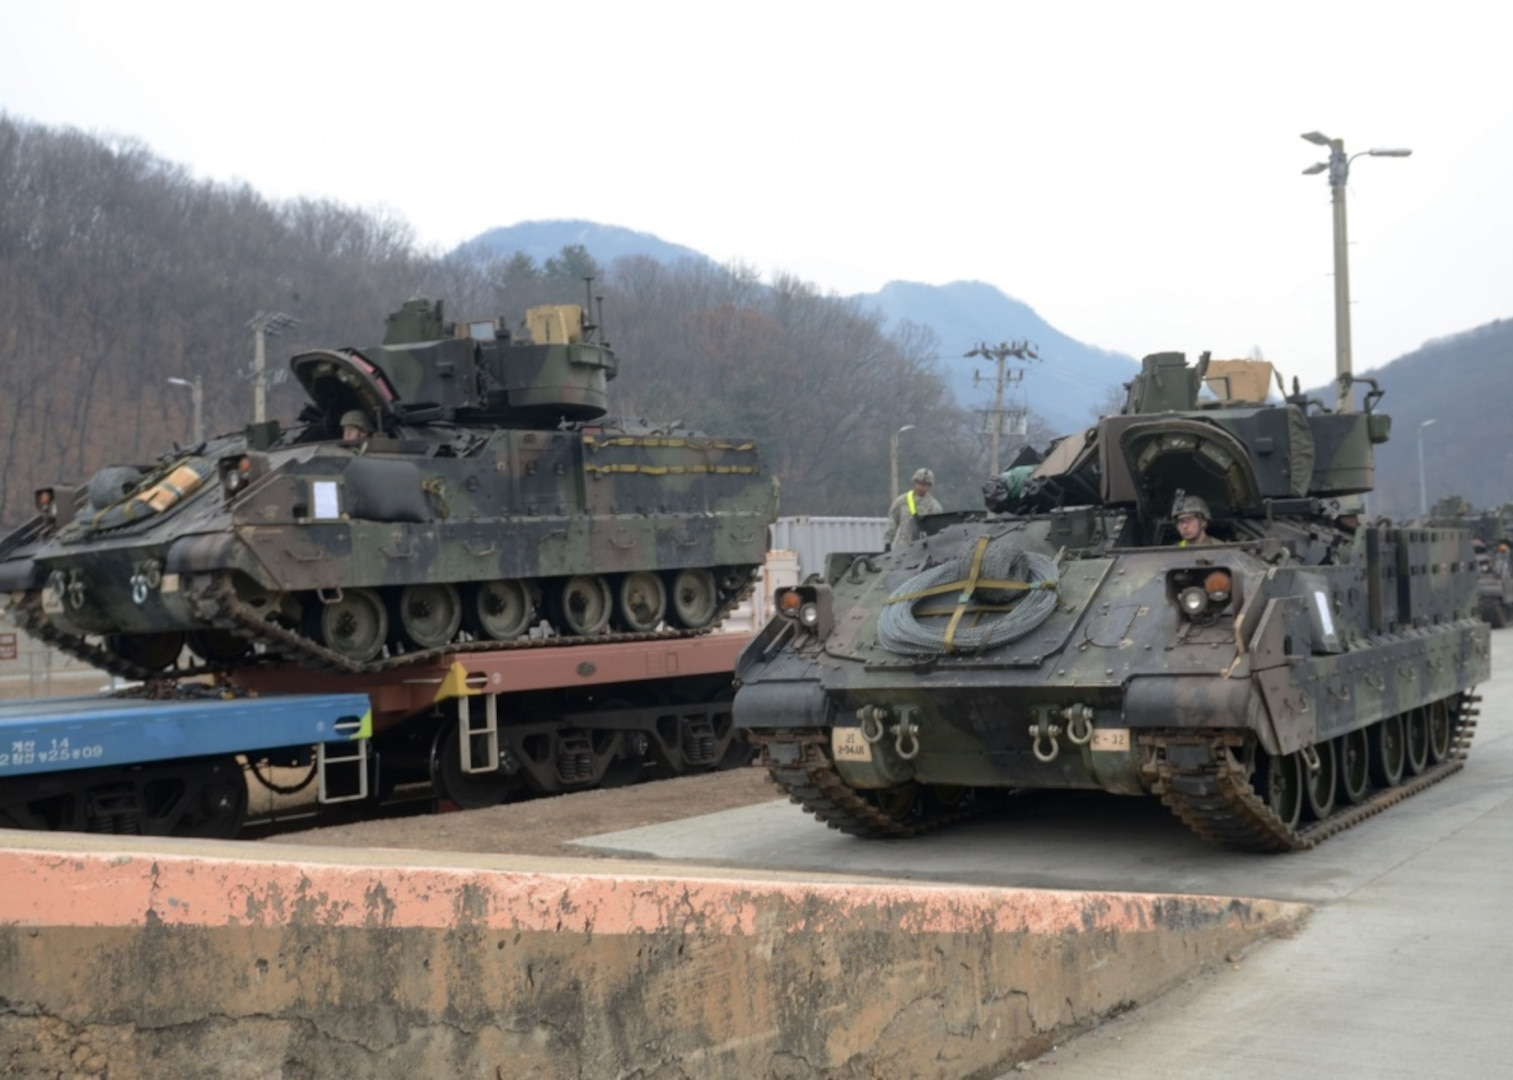 Soldiers from 2nd Battalion, 34th Armor Regiment, 1st Armored Brigade Combat Team, 1st Infantry Division, load their M2 Bradley Infantry Fighting Vehicles onto rail cars during relocation operations at the Camp Casey rail yard Feb. 22. The battalion is the first of the 1st ABCT's units to conduct the move to Camp Humphreys in Pyeongtaek, South Korea.